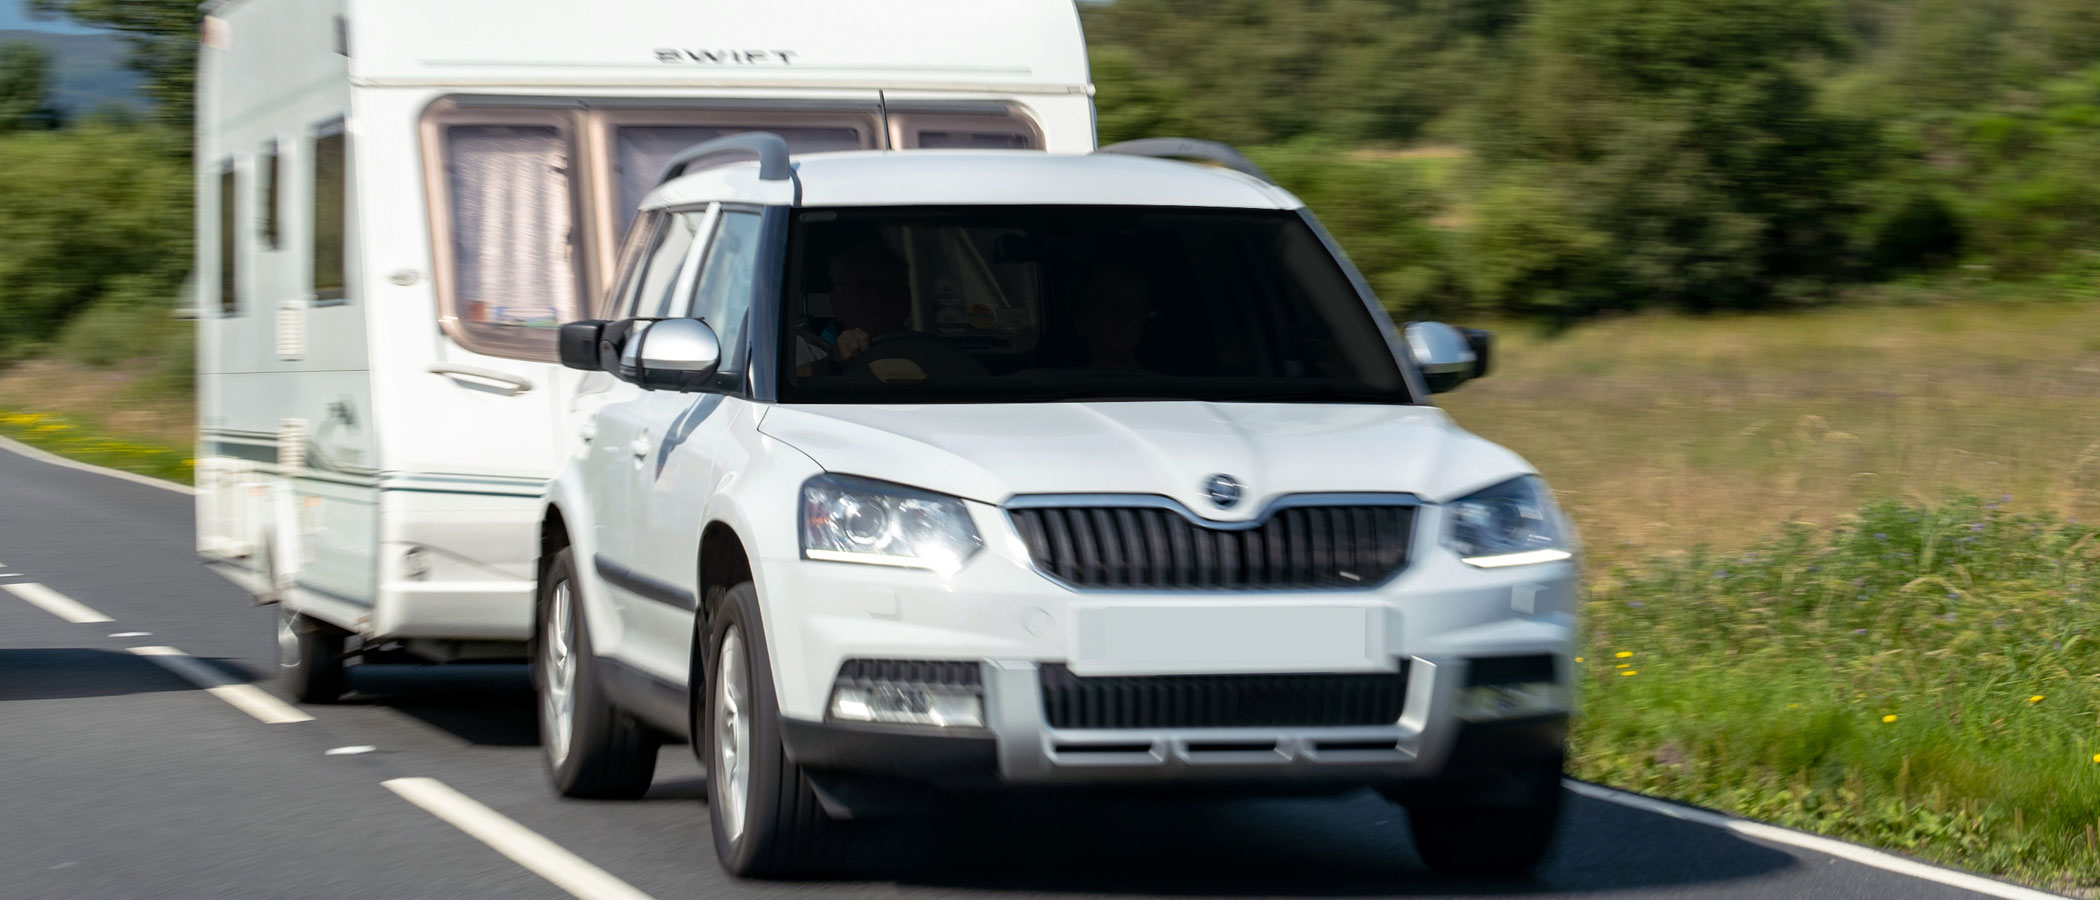 Do you lack power when pulling your caravan? Are you struggling on hills?